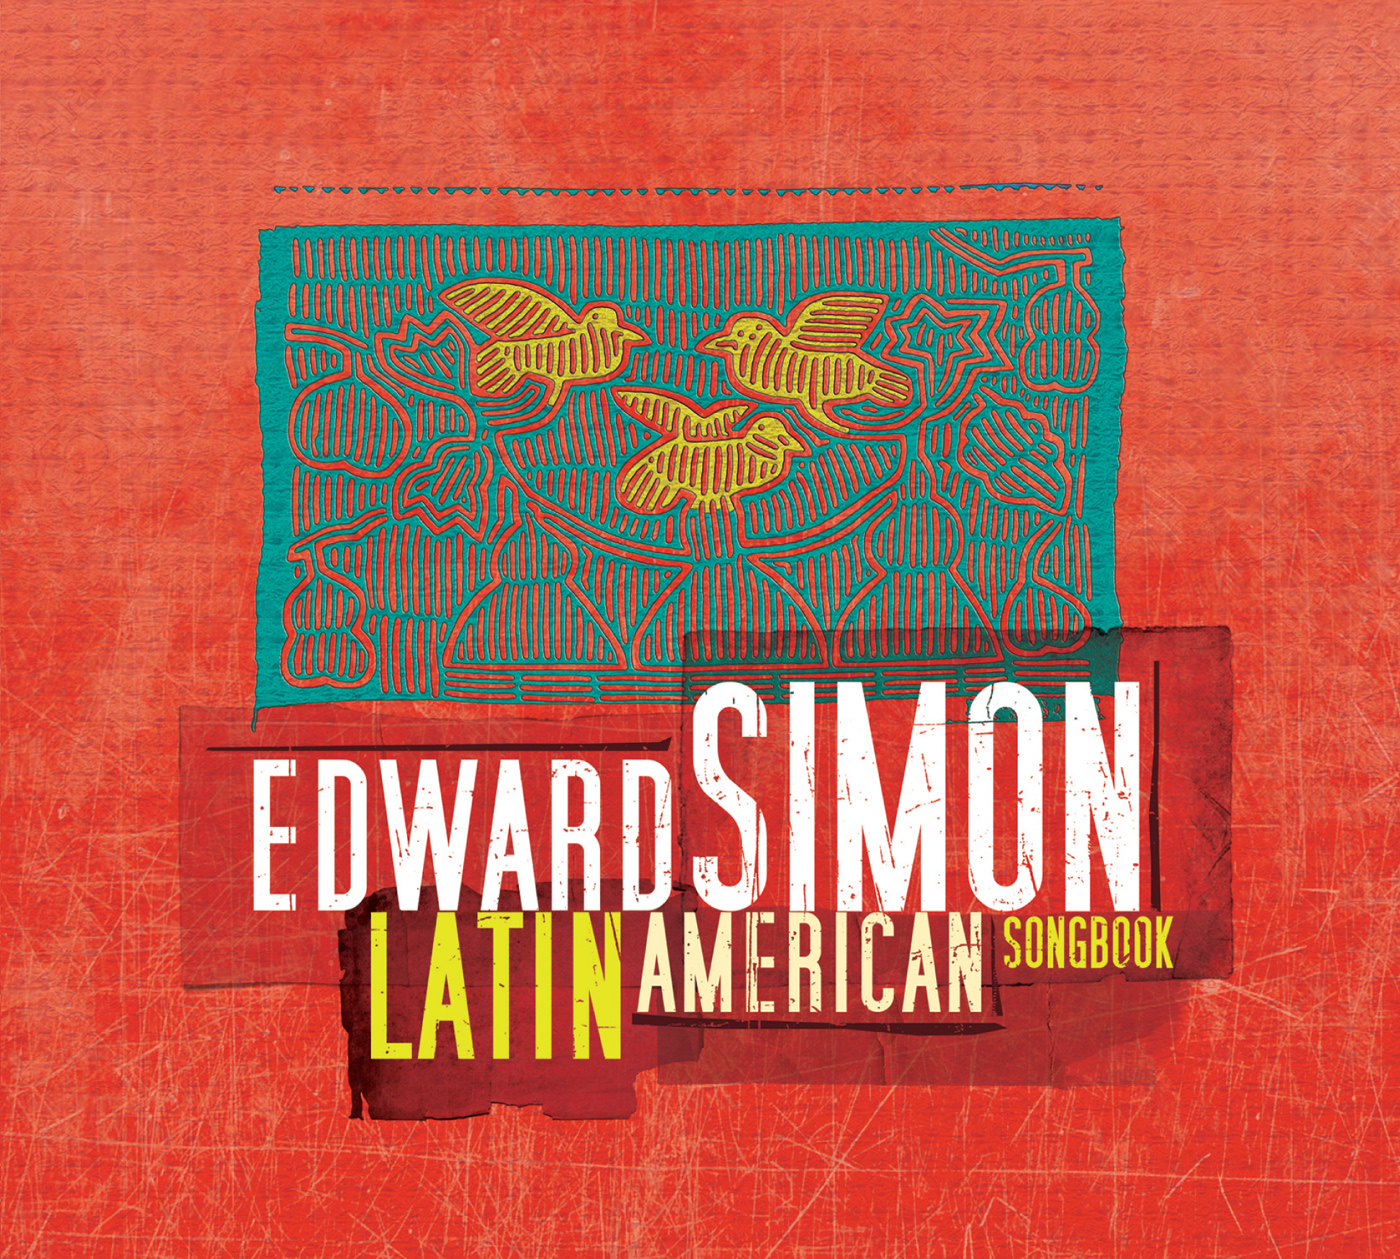 Latin American Songbook  by Edward  Simon cover